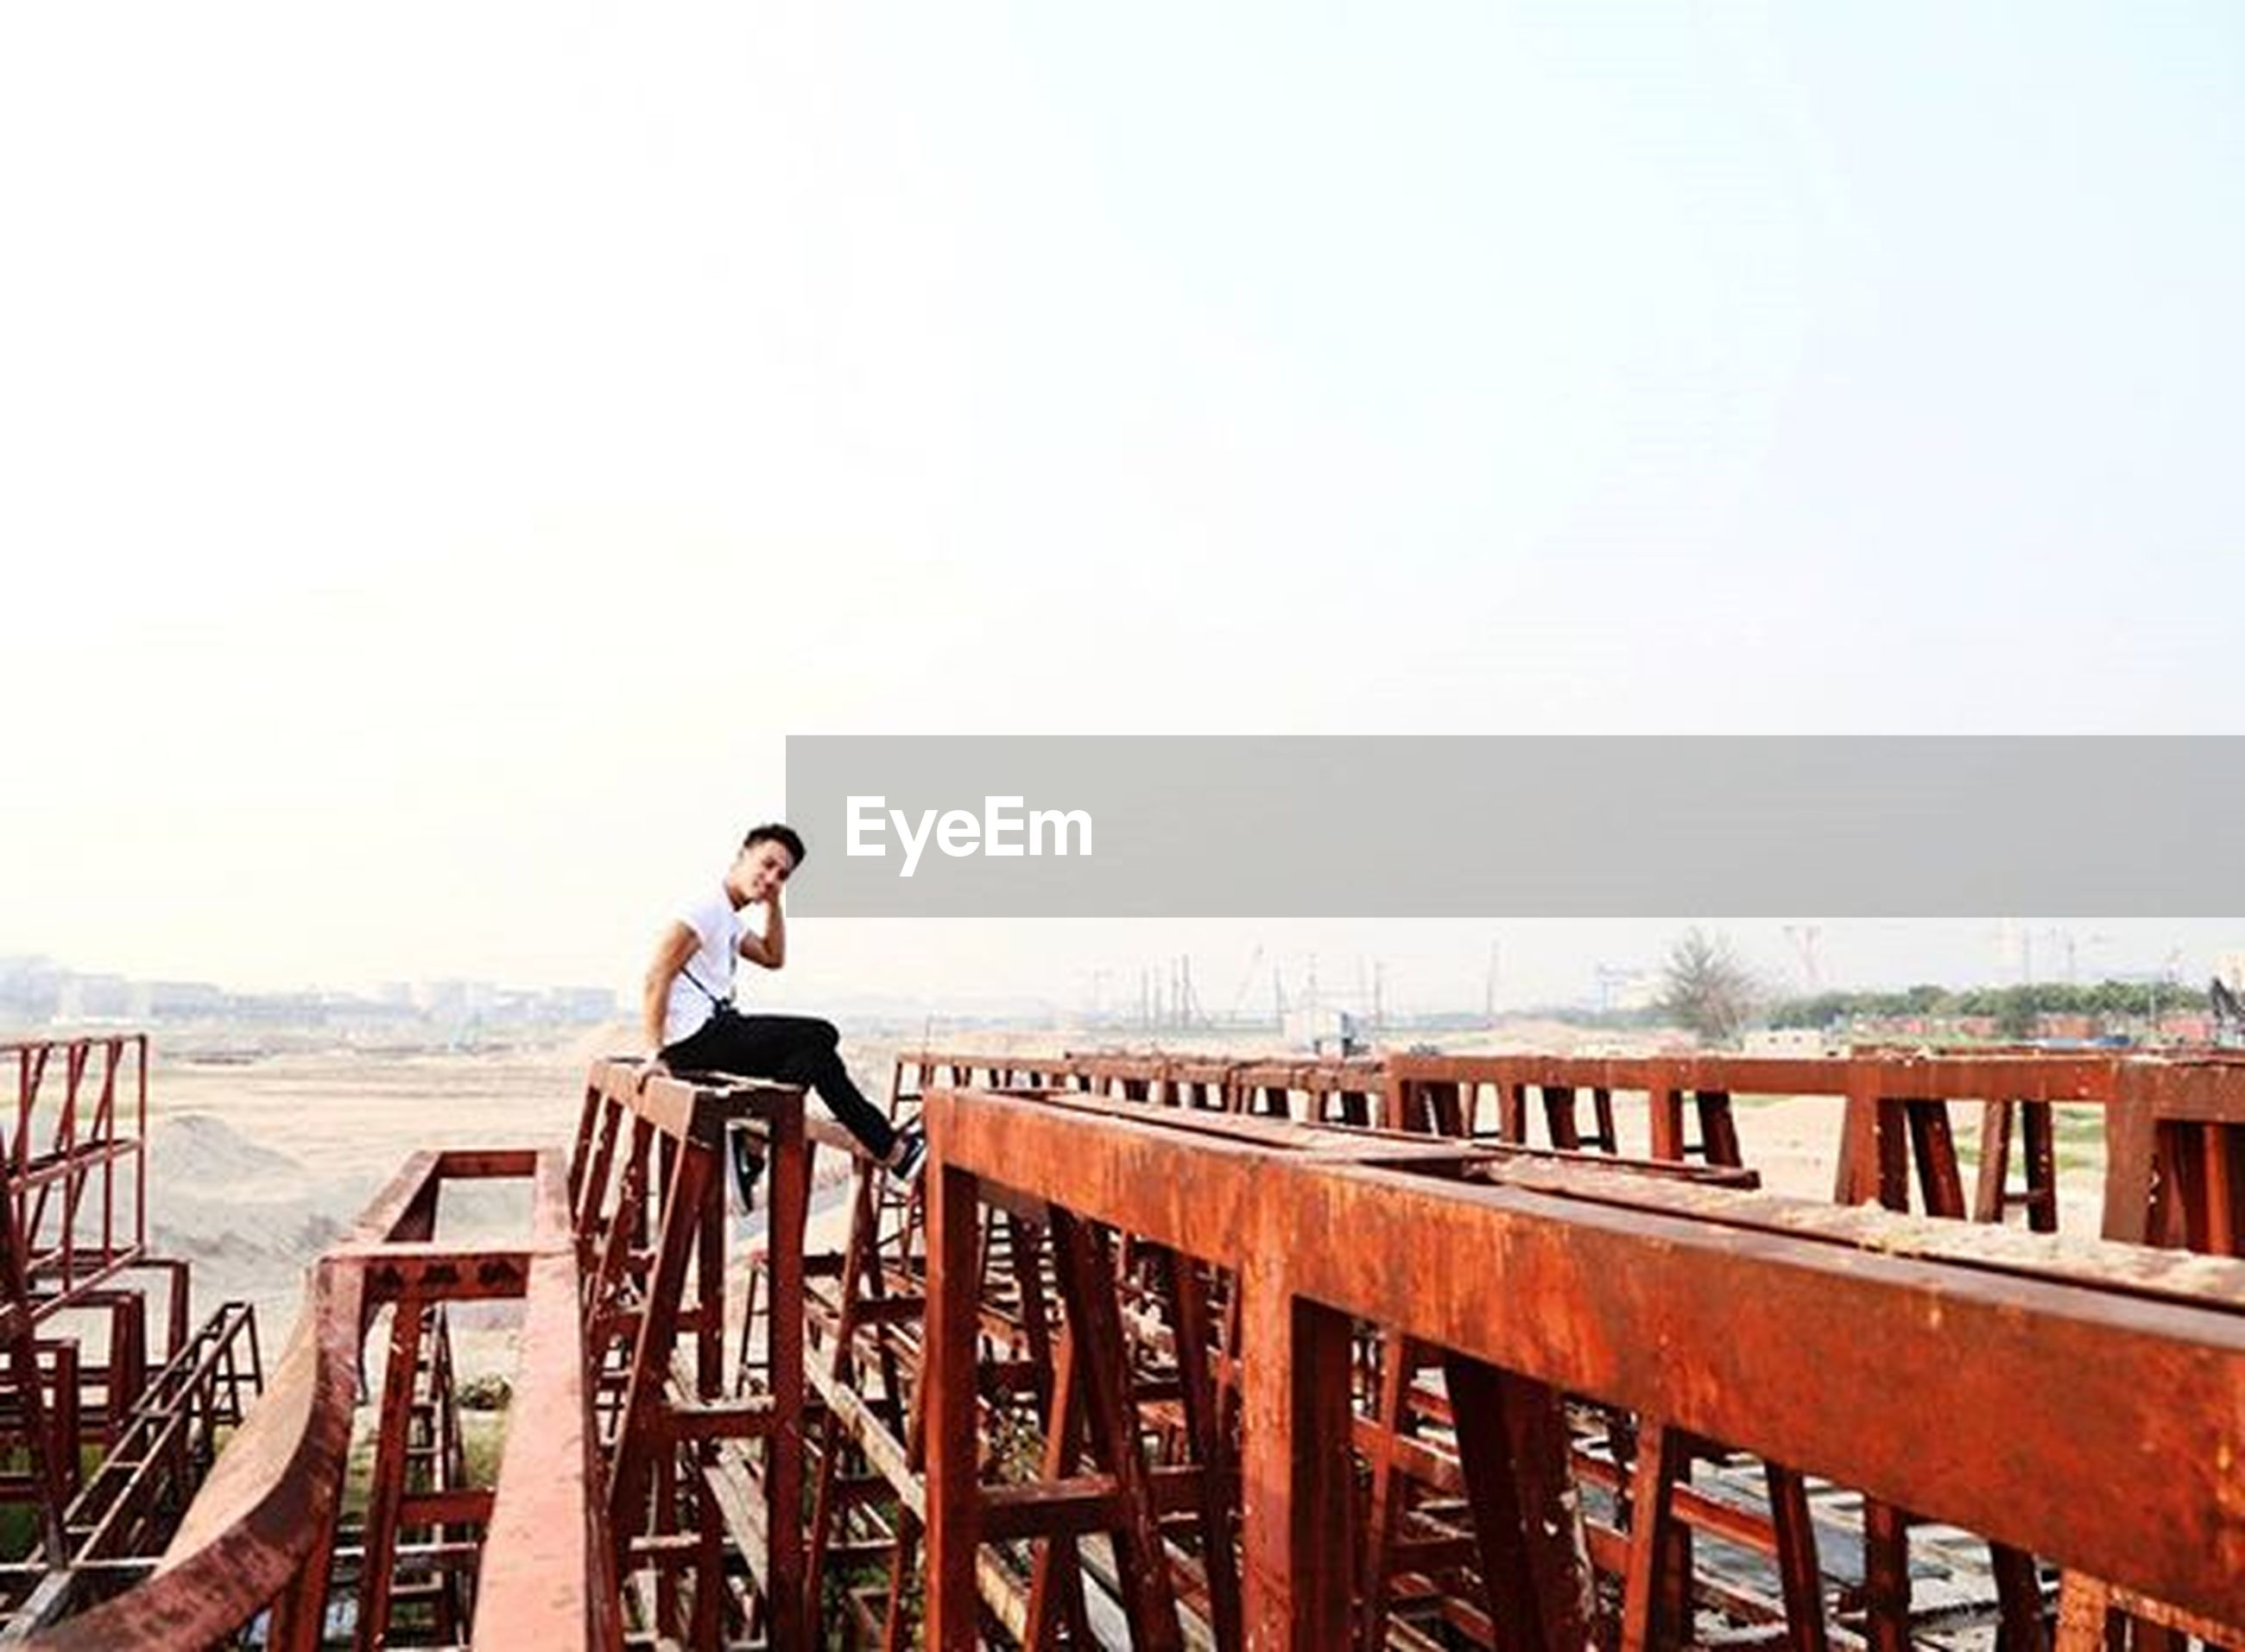 lifestyles, young adult, railing, clear sky, standing, casual clothing, leisure activity, copy space, person, waist up, young men, smiling, three quarter length, front view, portrait, sky, side view